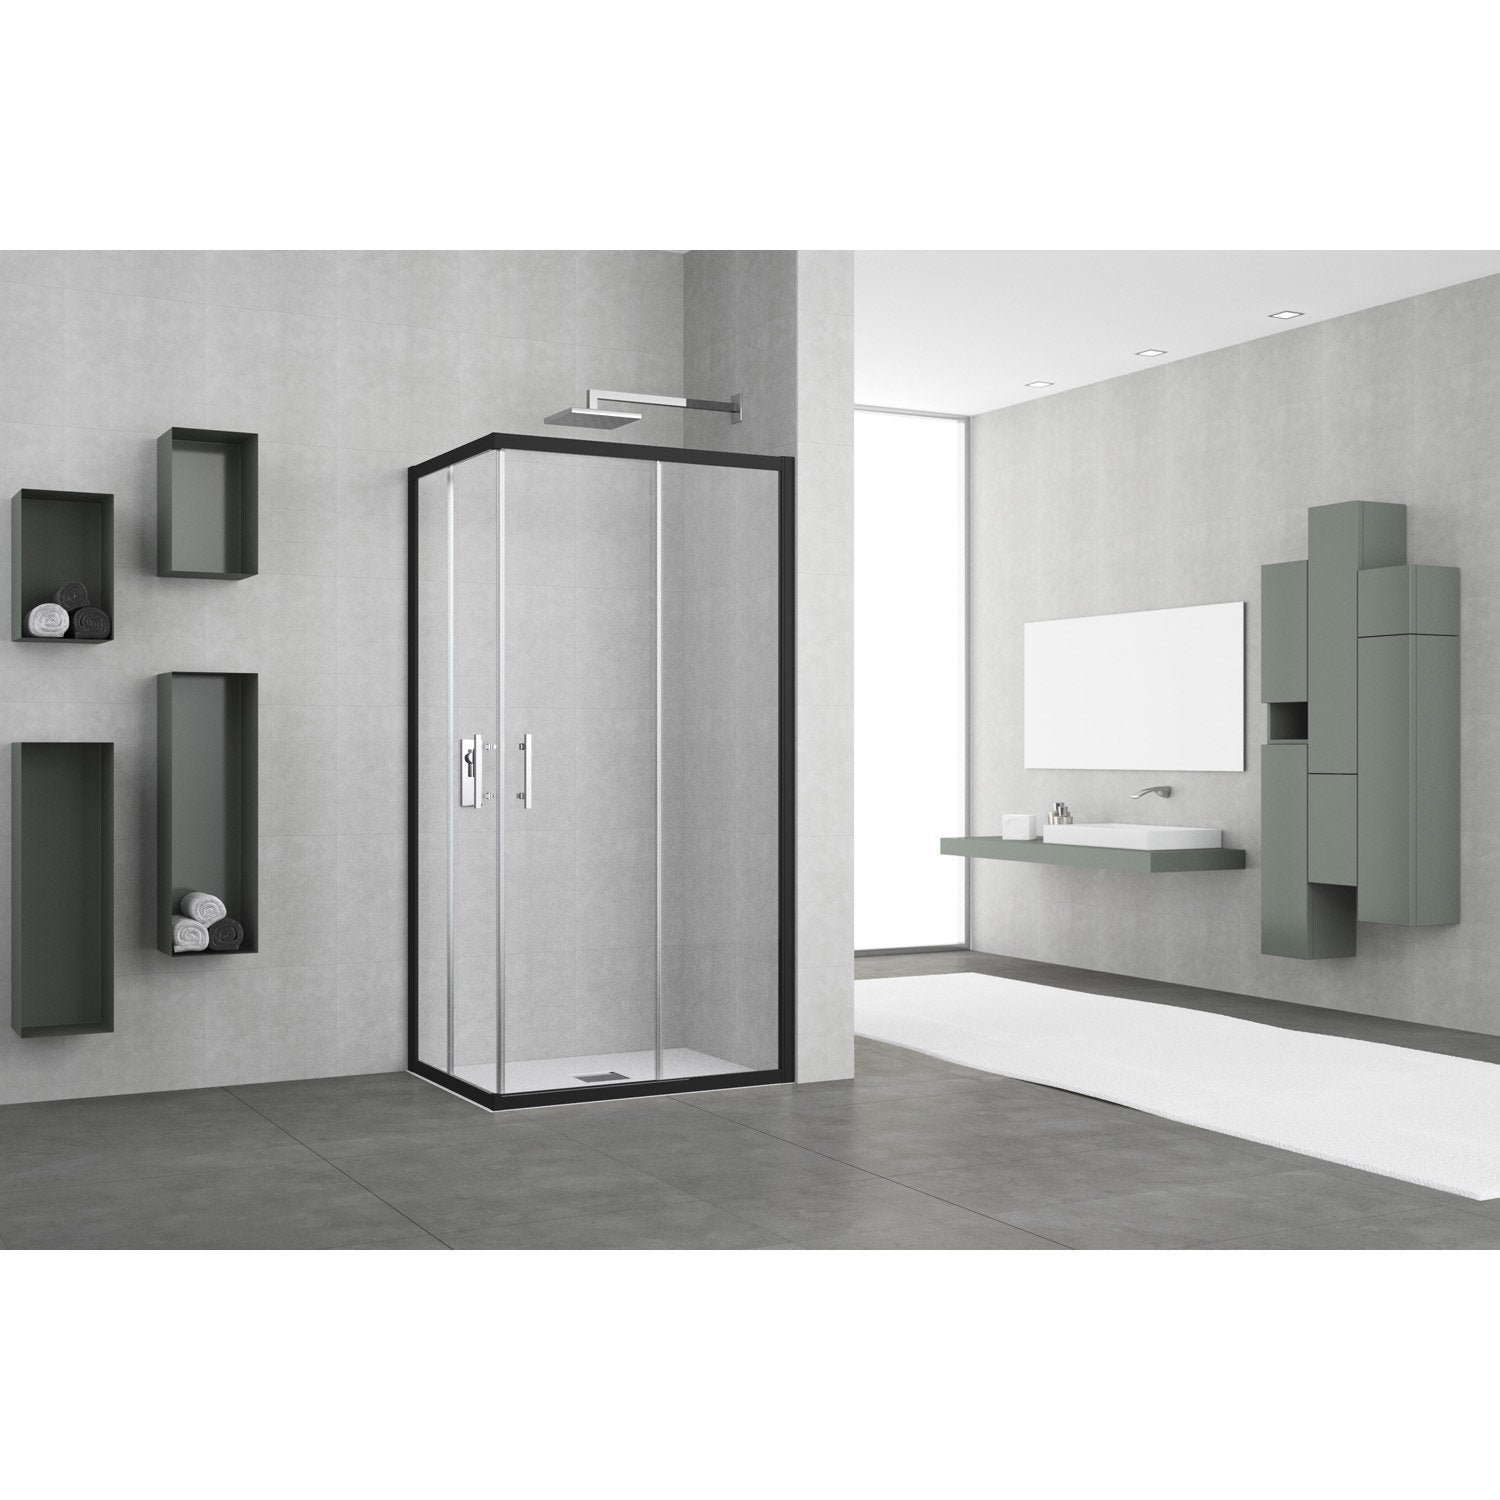 porte de douche coulissante angle rectangle x. Black Bedroom Furniture Sets. Home Design Ideas